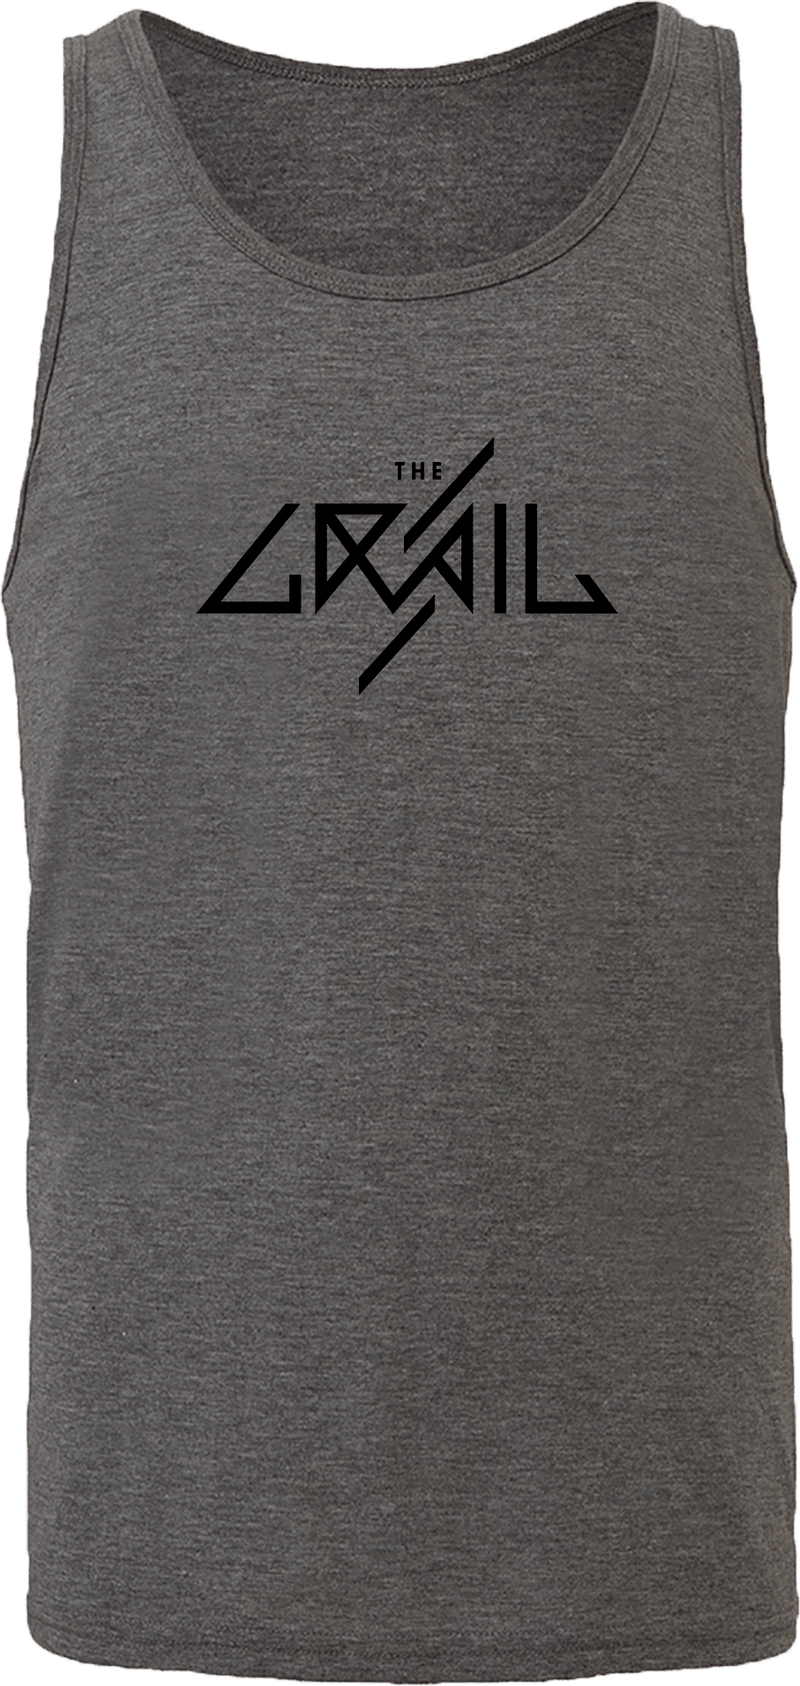 TANK TOP - 2021 The Grail